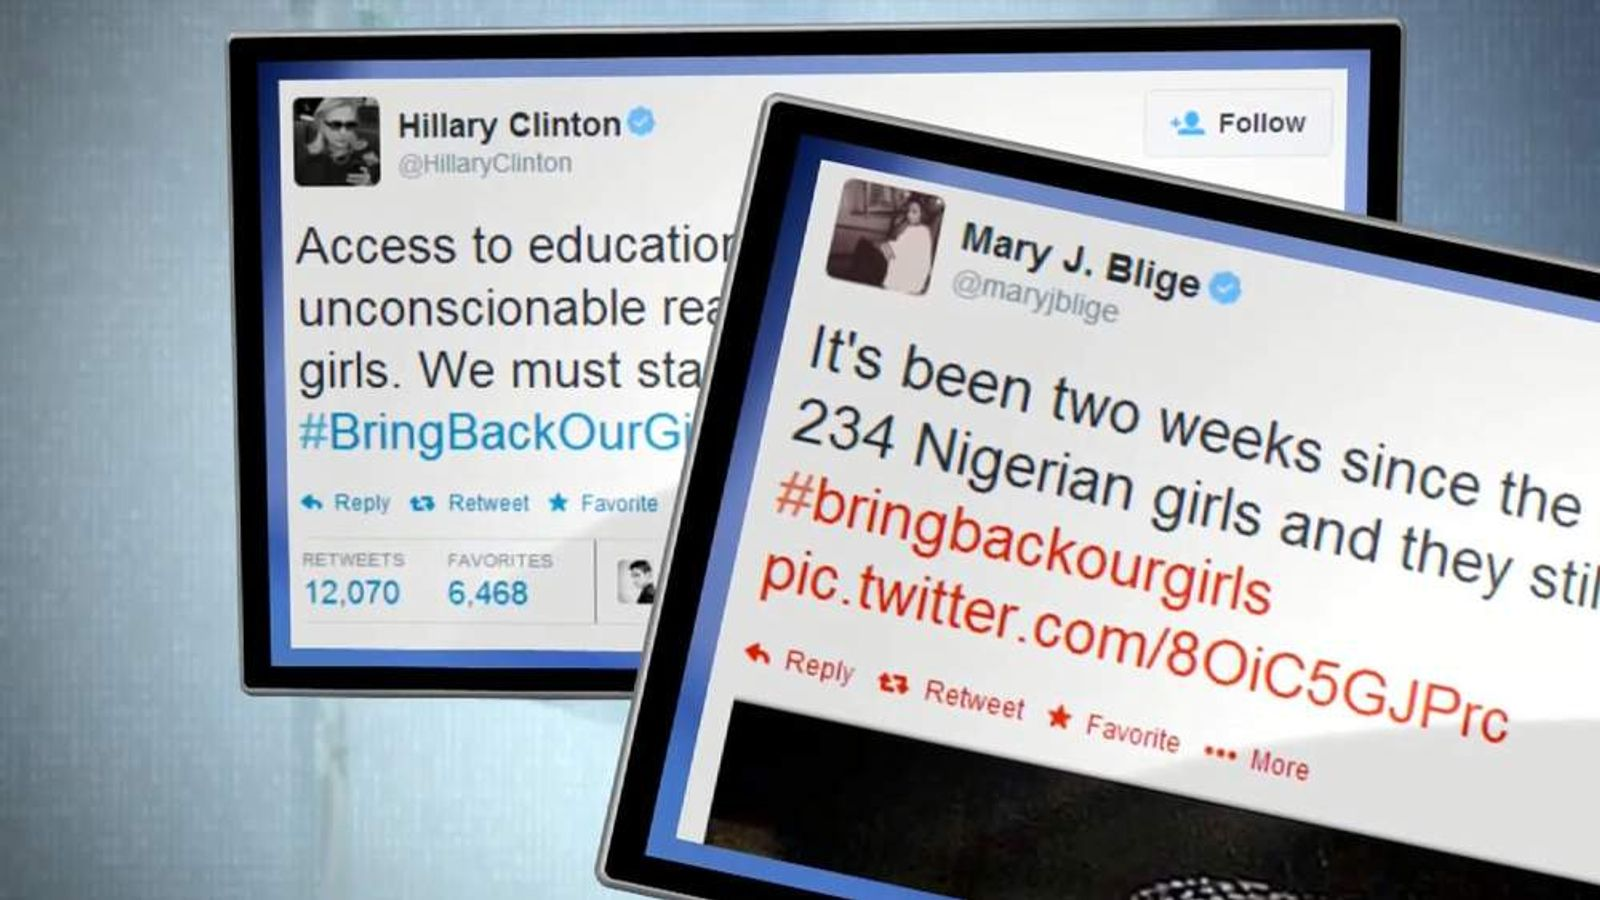 #bringbackourgirls twitter campaign